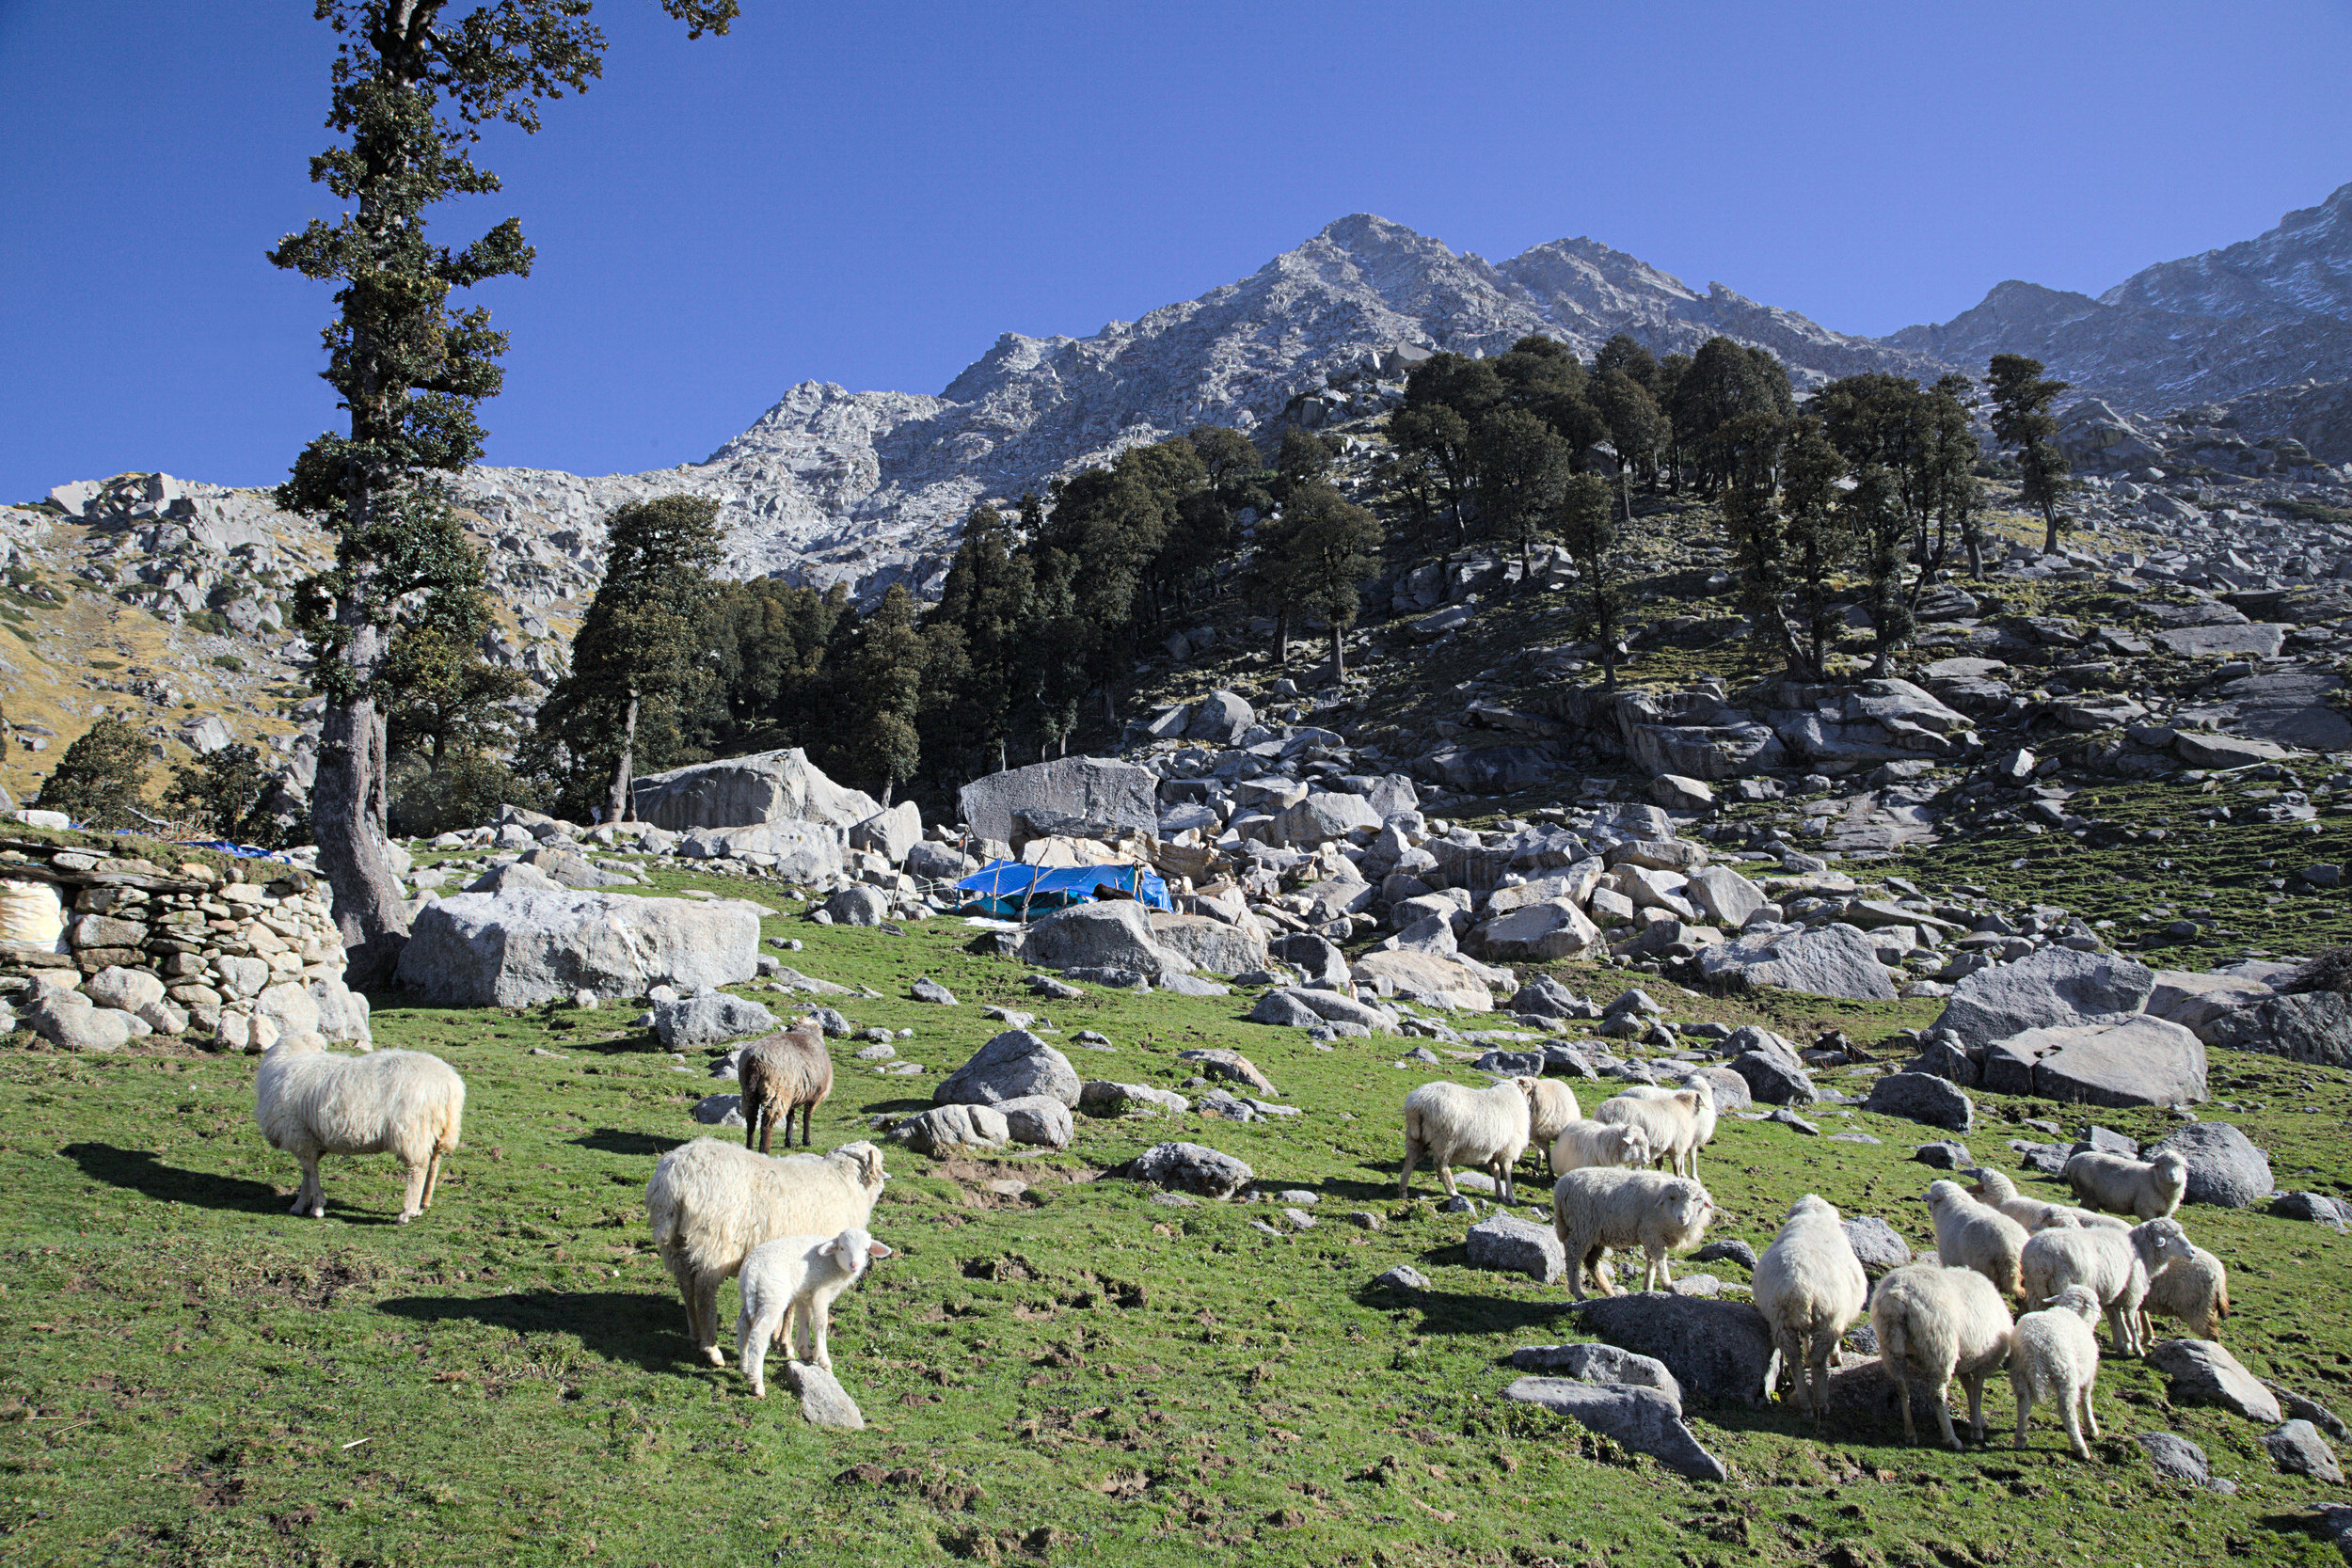 Arjun's shelter at Ilaka, near Dharamsala. Gaddis carry tarpaulin and occasionally build temporary shelters in which they will cook and sleep.